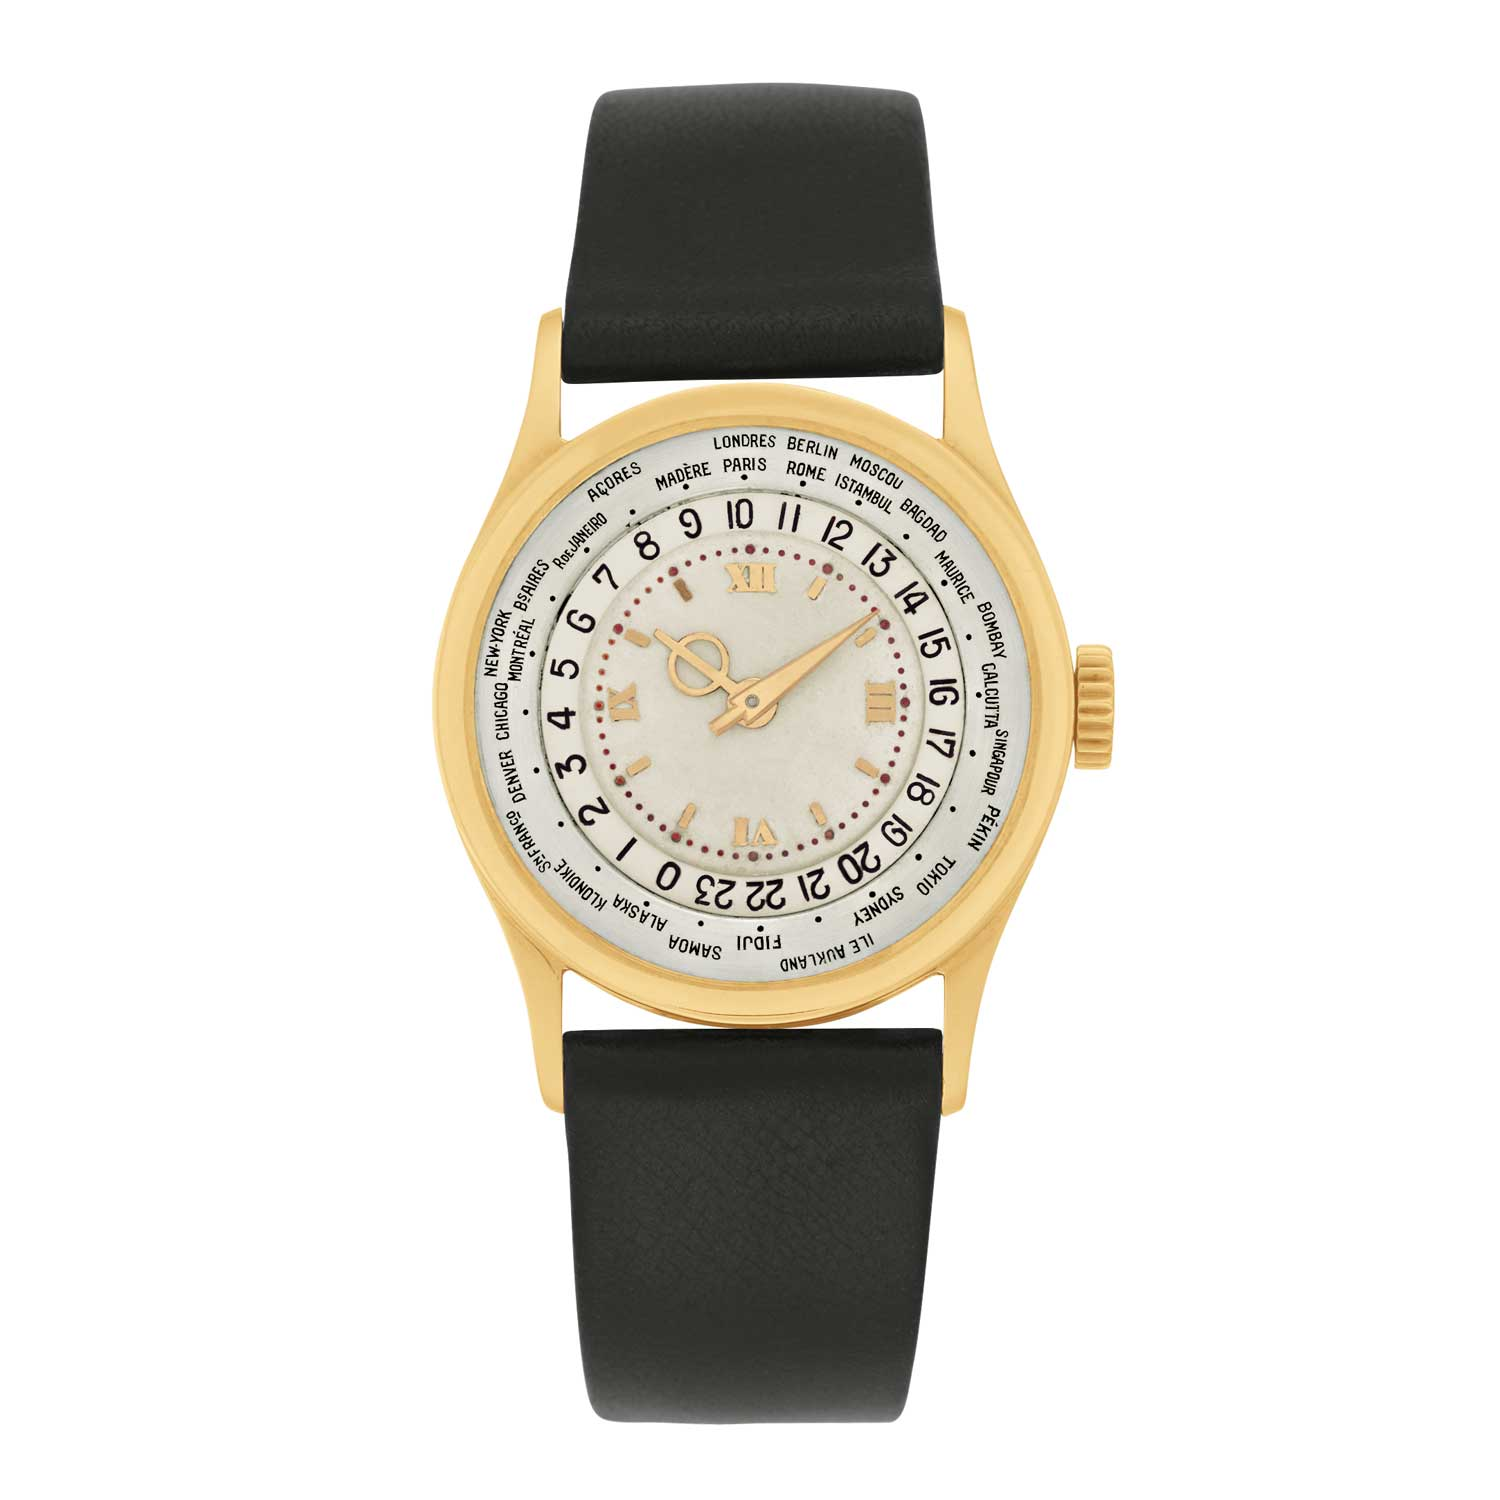 Patek Philippe ref. 96 HU has the names of 28 cities on a ring around the dial.